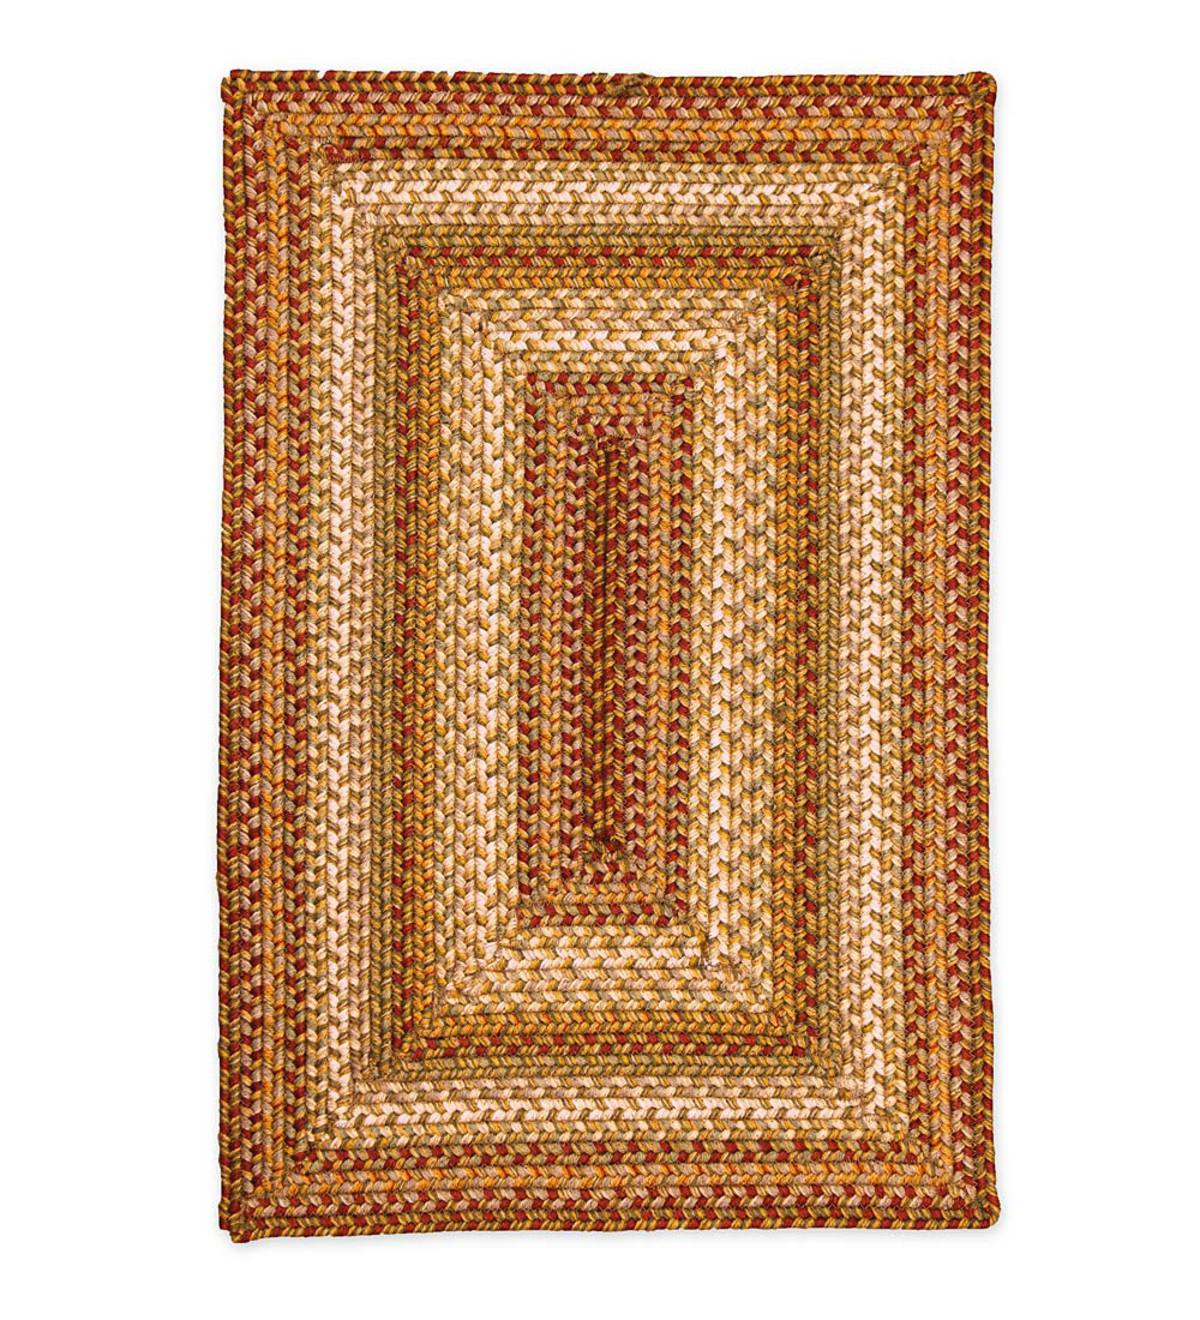 James River Braided Indoor Outdoor Rug 20 X 30 Plowhearth